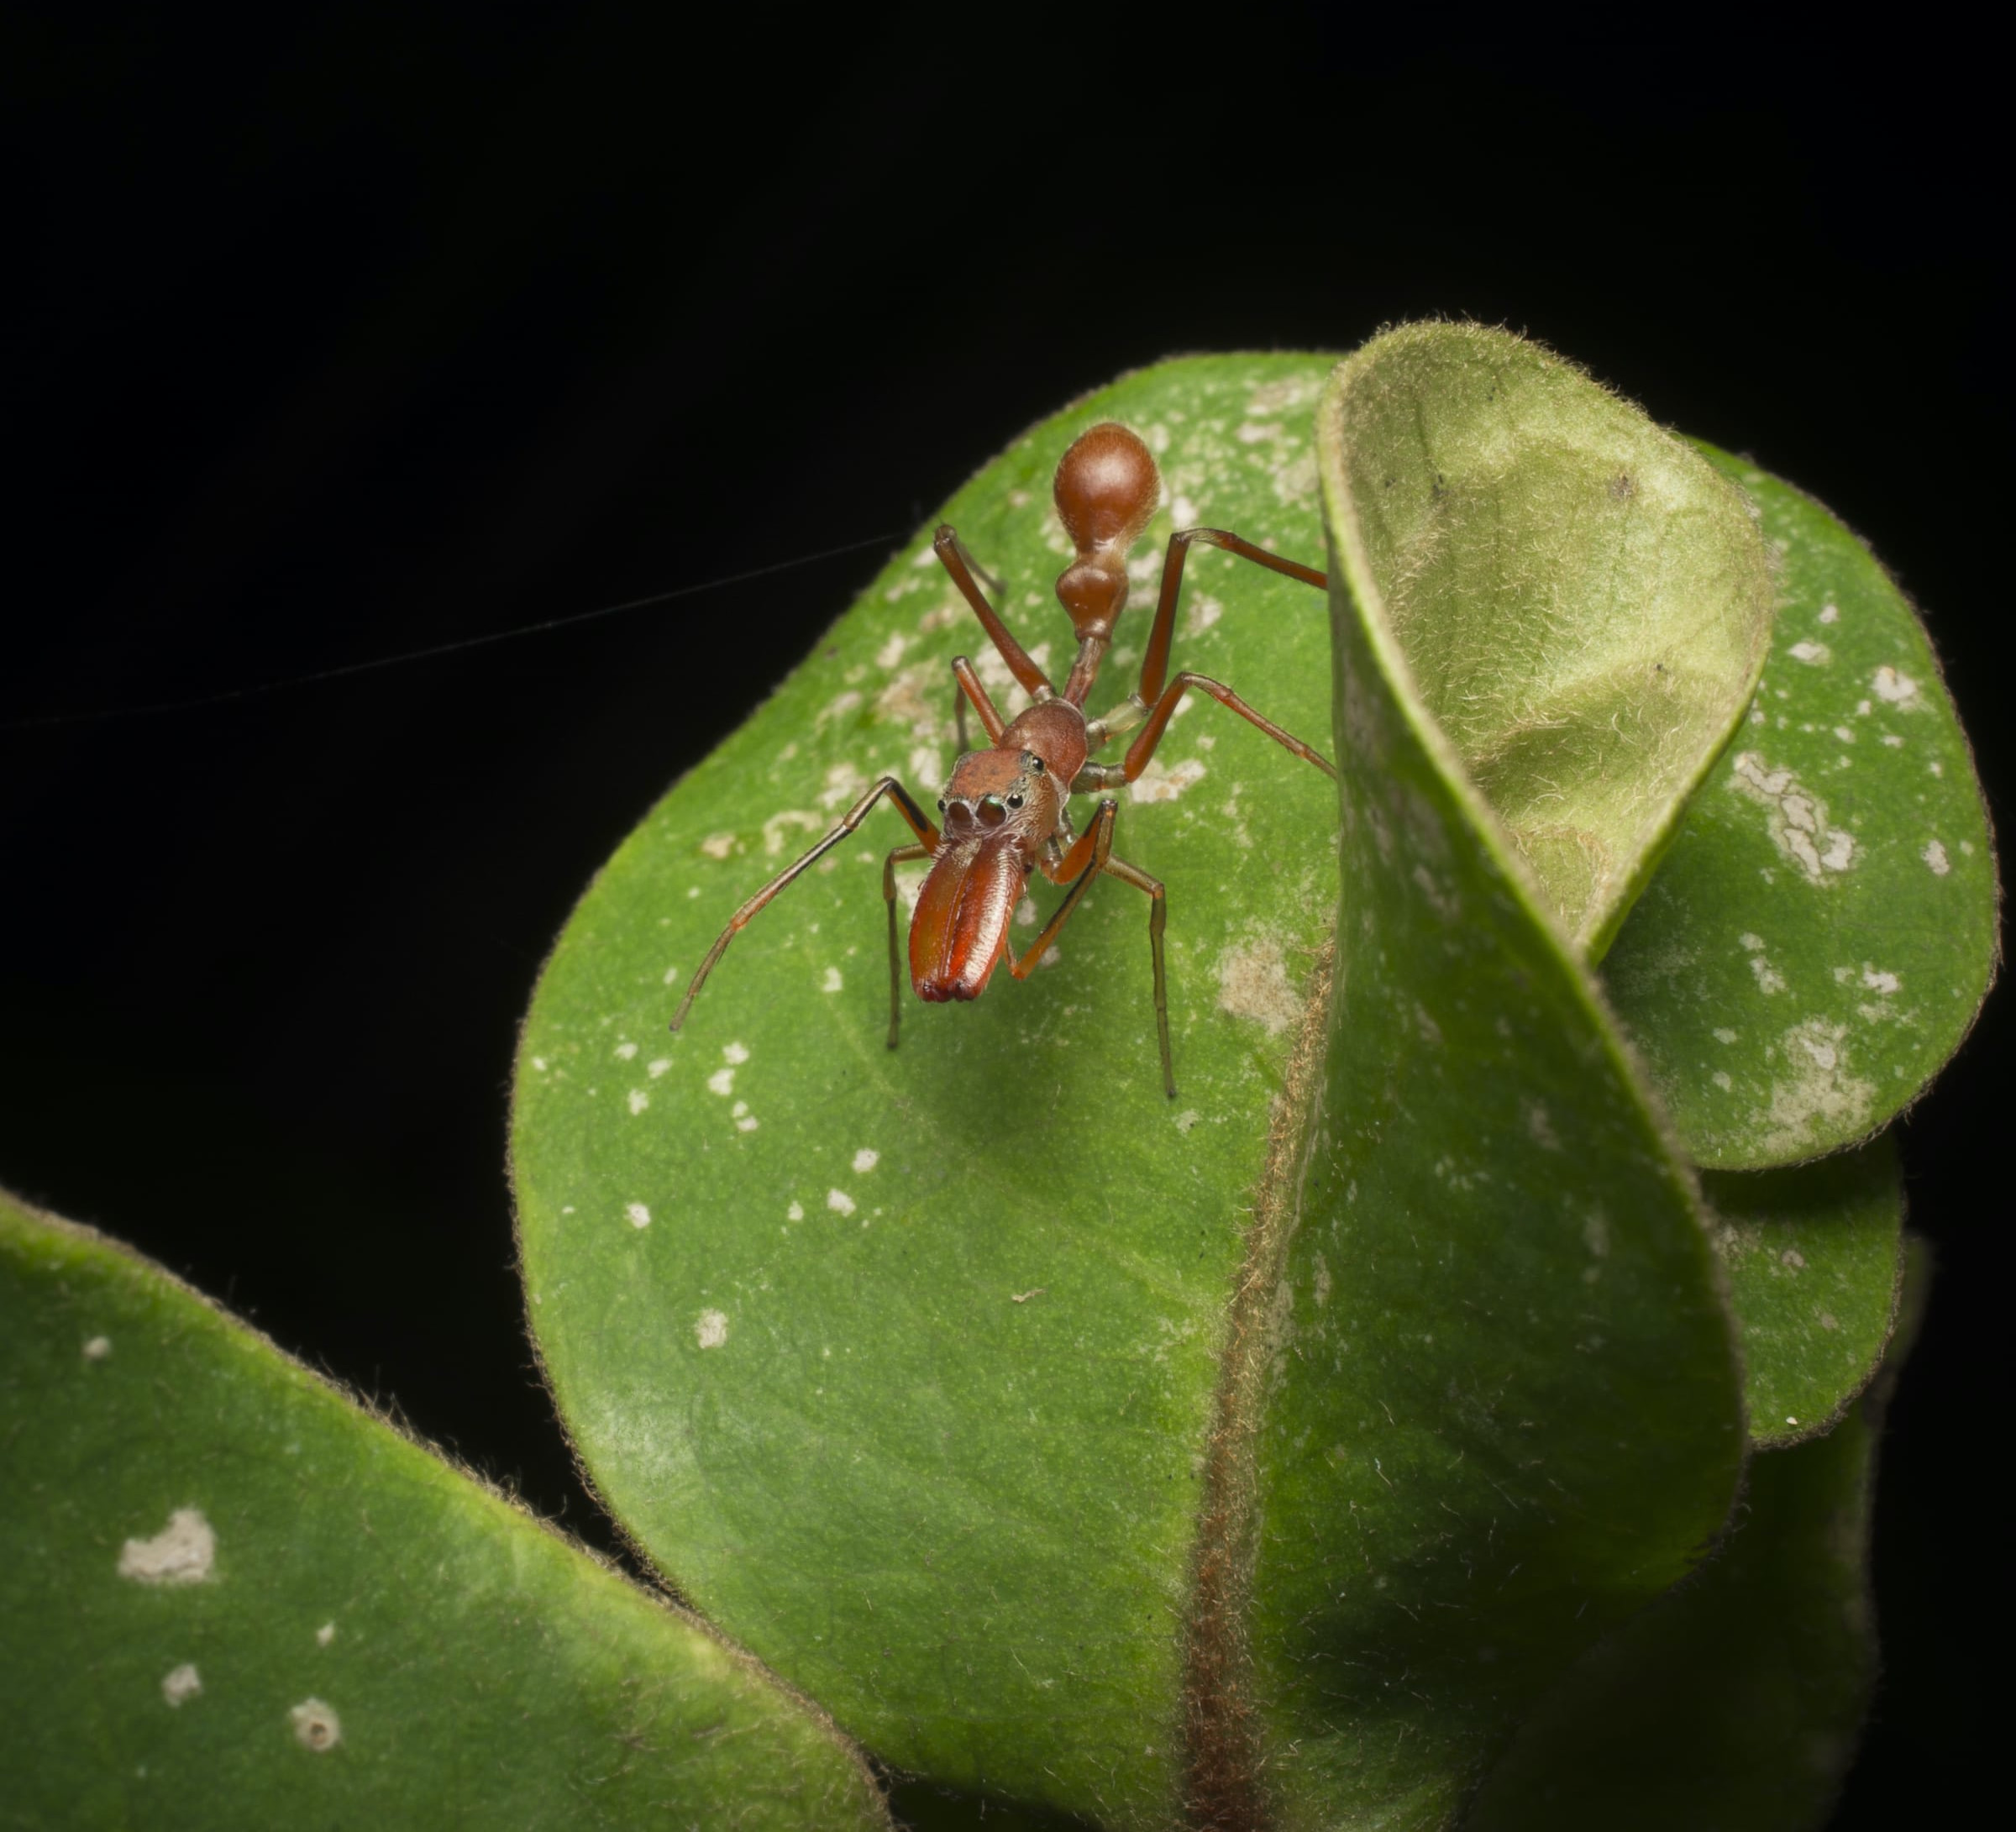 Nest of Deception: When Spiders Mimic Weaver Ants